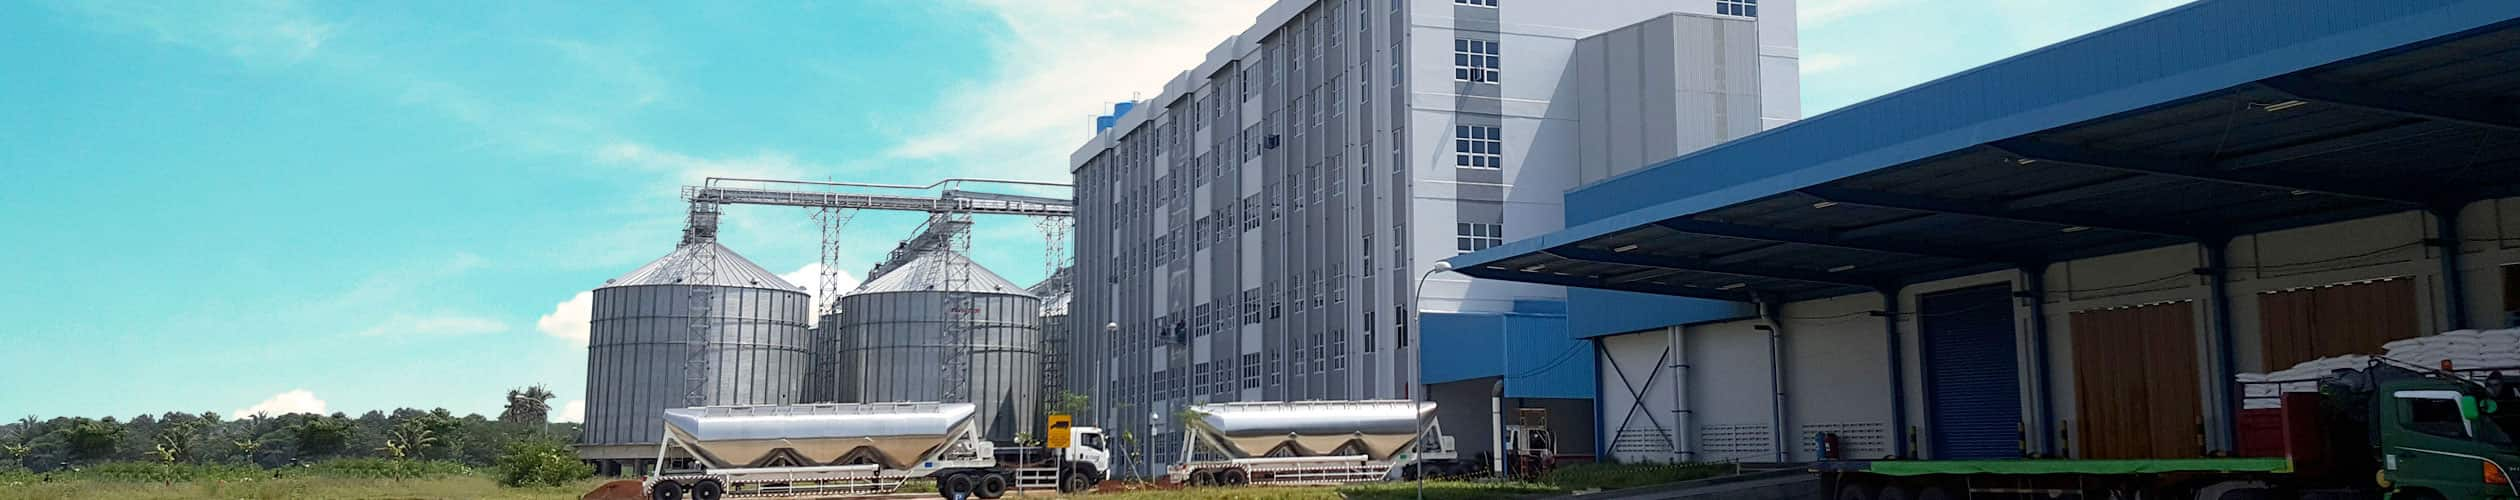 Flour Milling | Grain Milling Technology